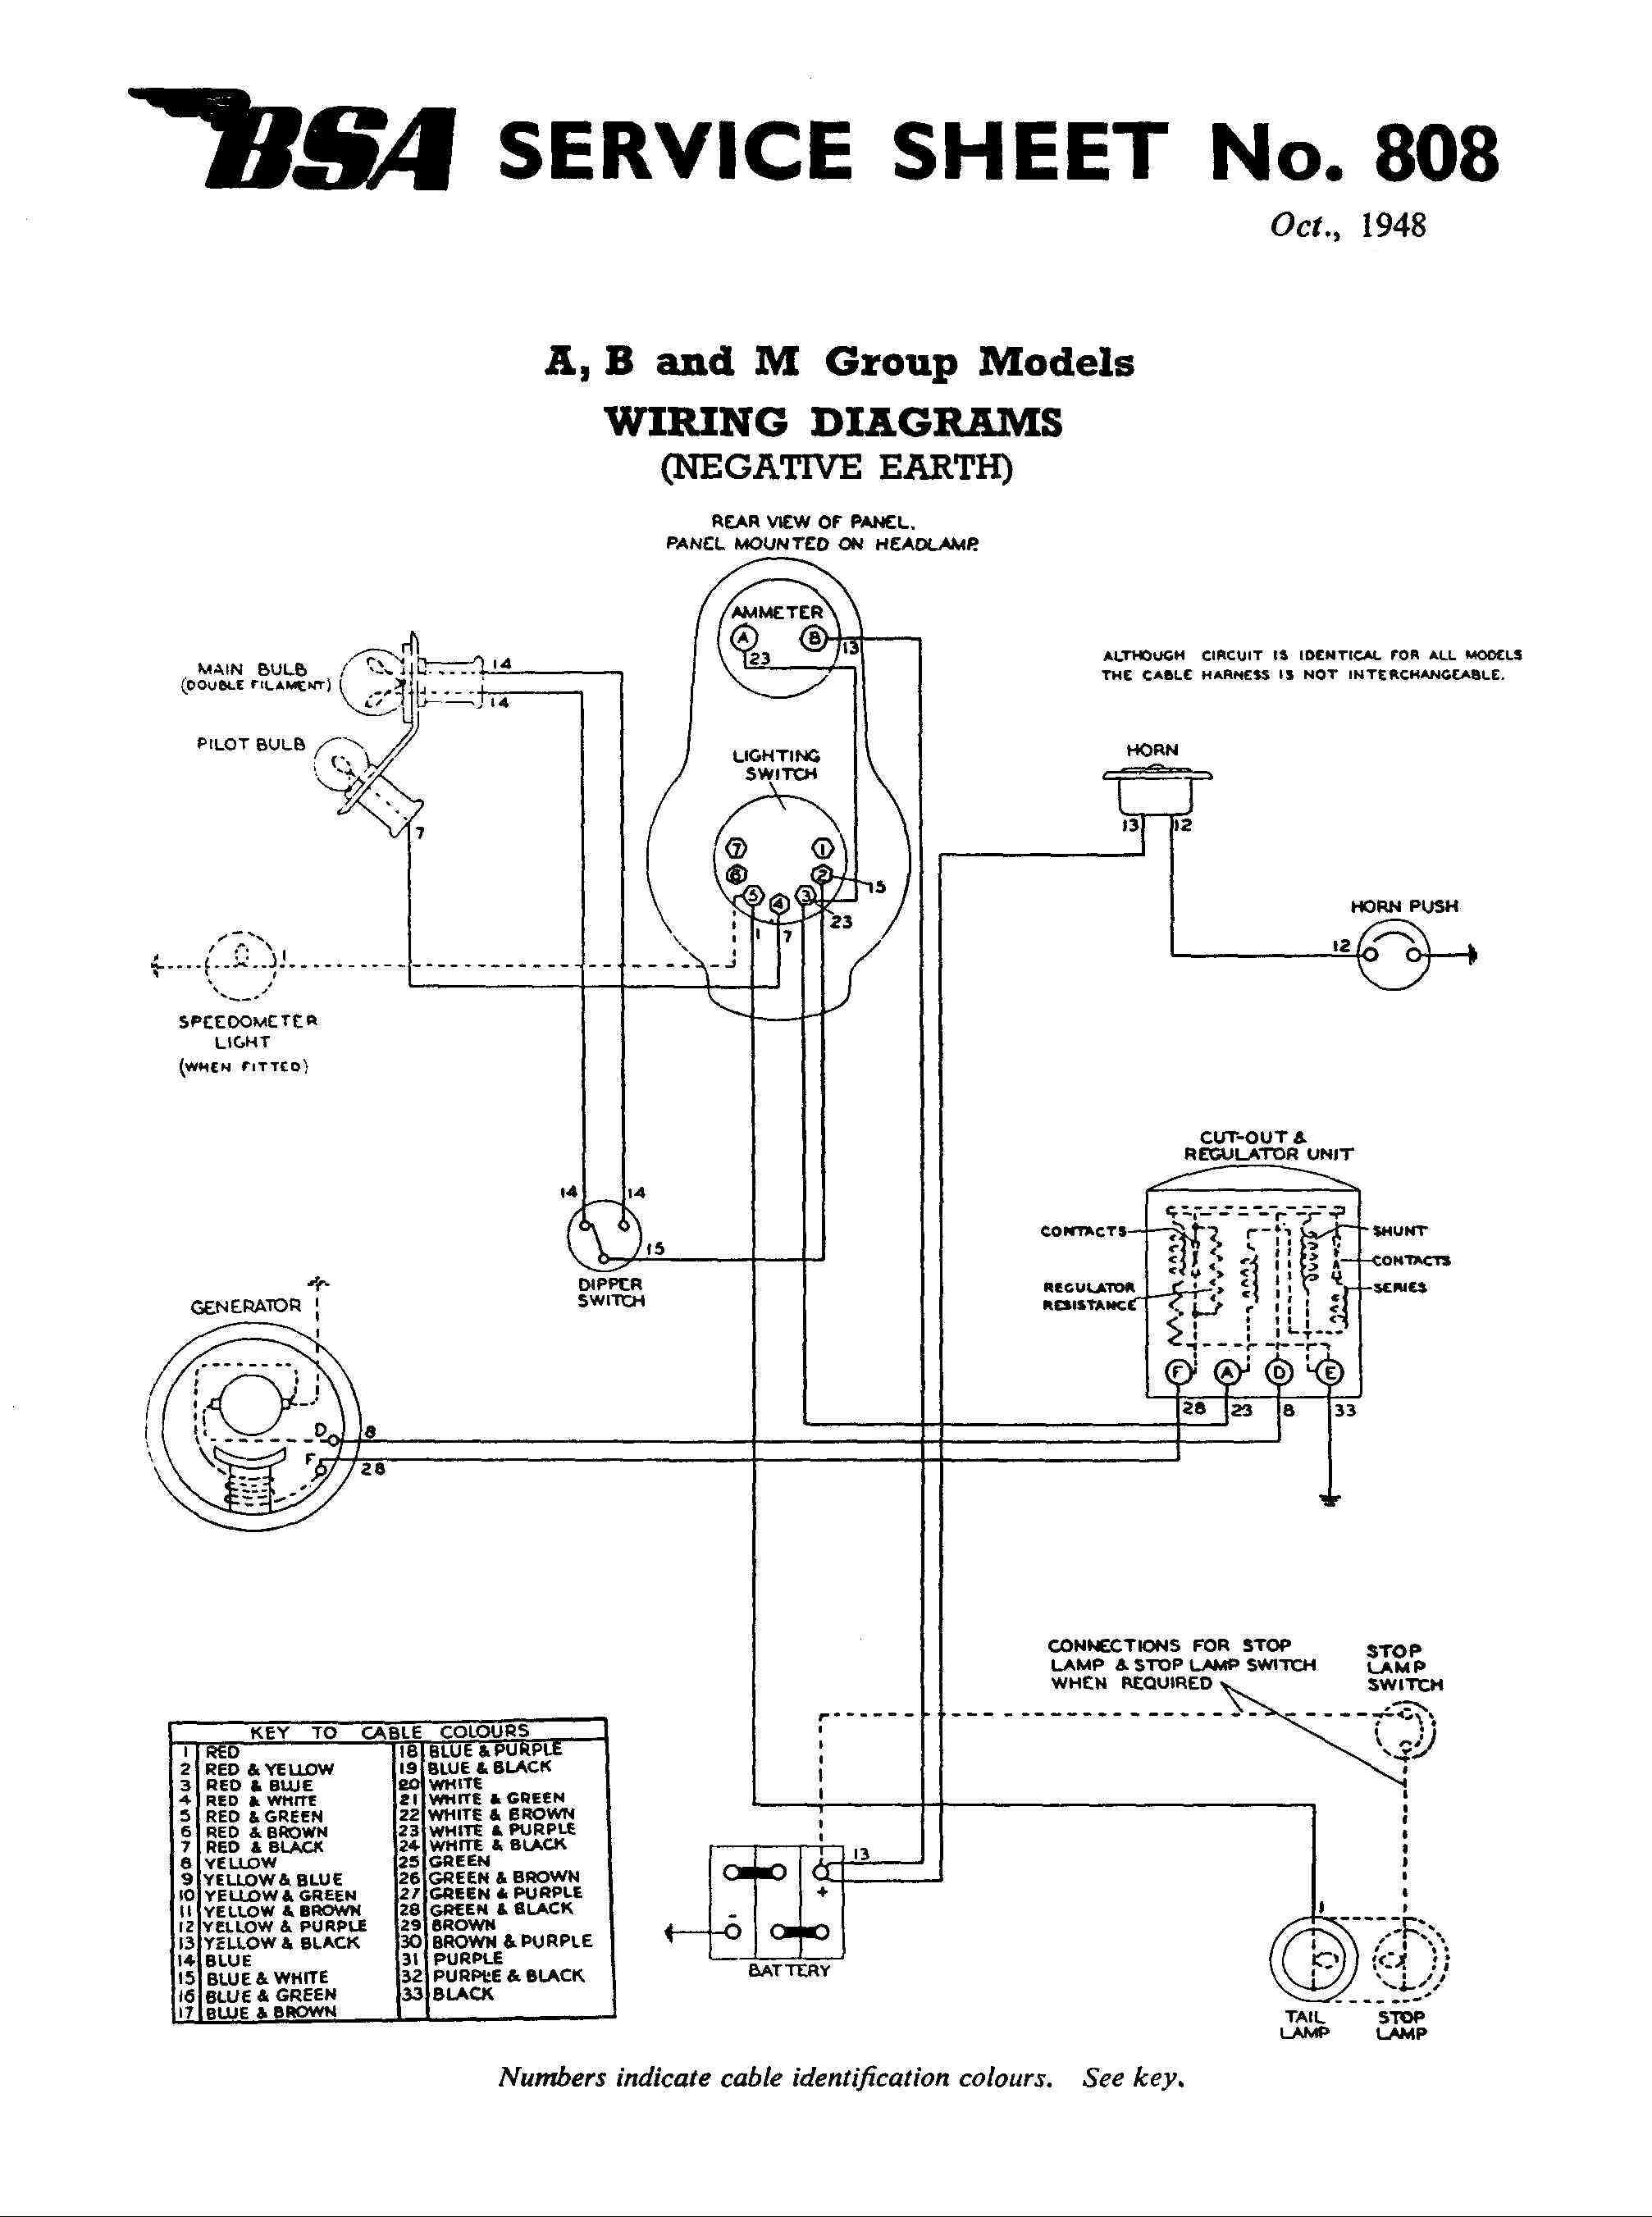 808 technical information bsa m20 wiring diagram at gsmx.co